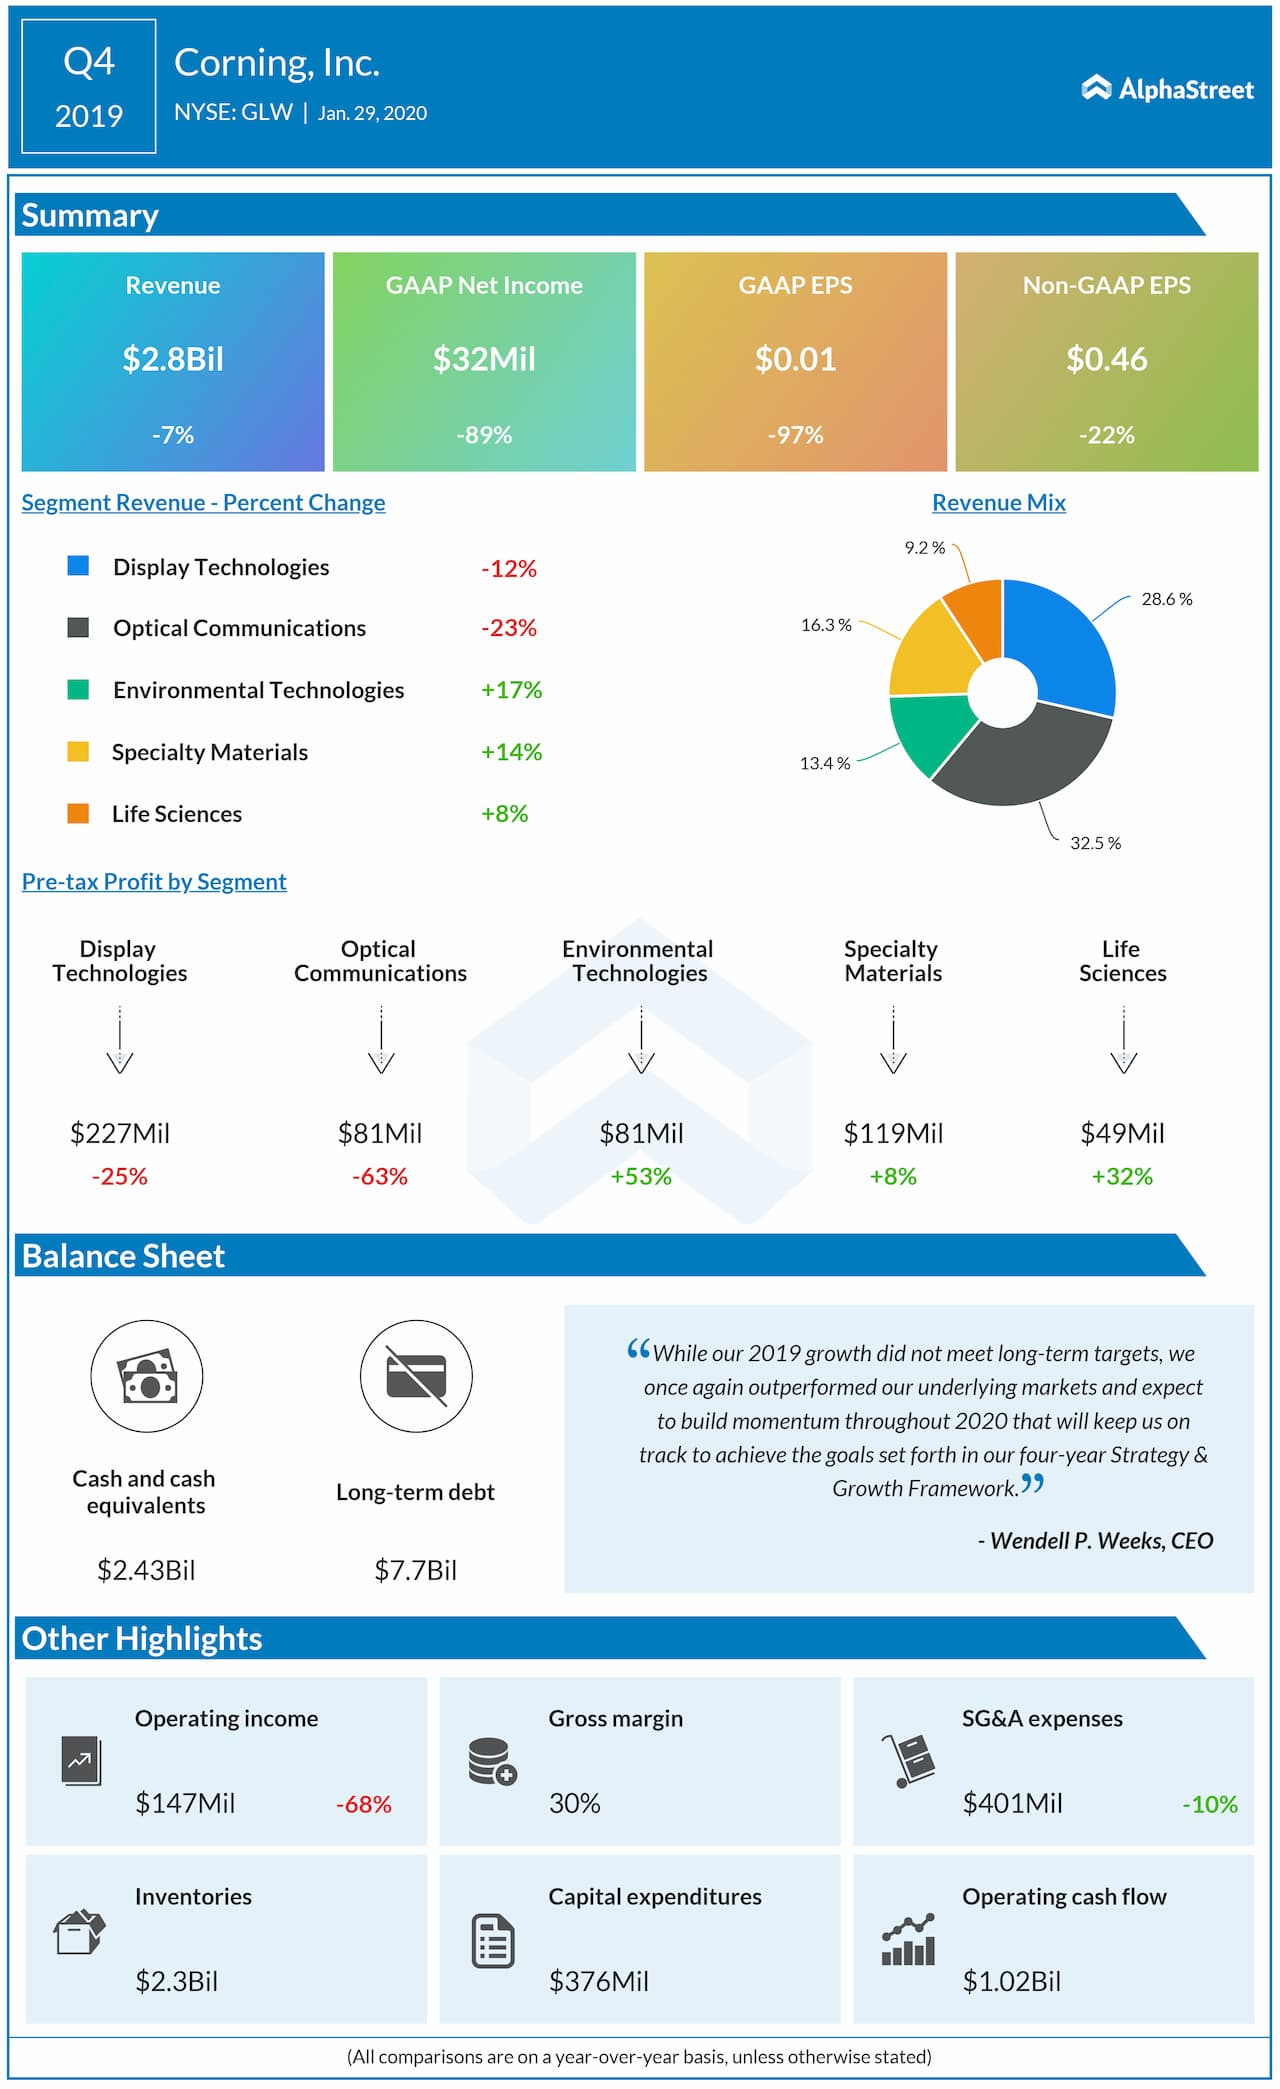 Corning (GLW) Q4 2019 Earnings Snapshot